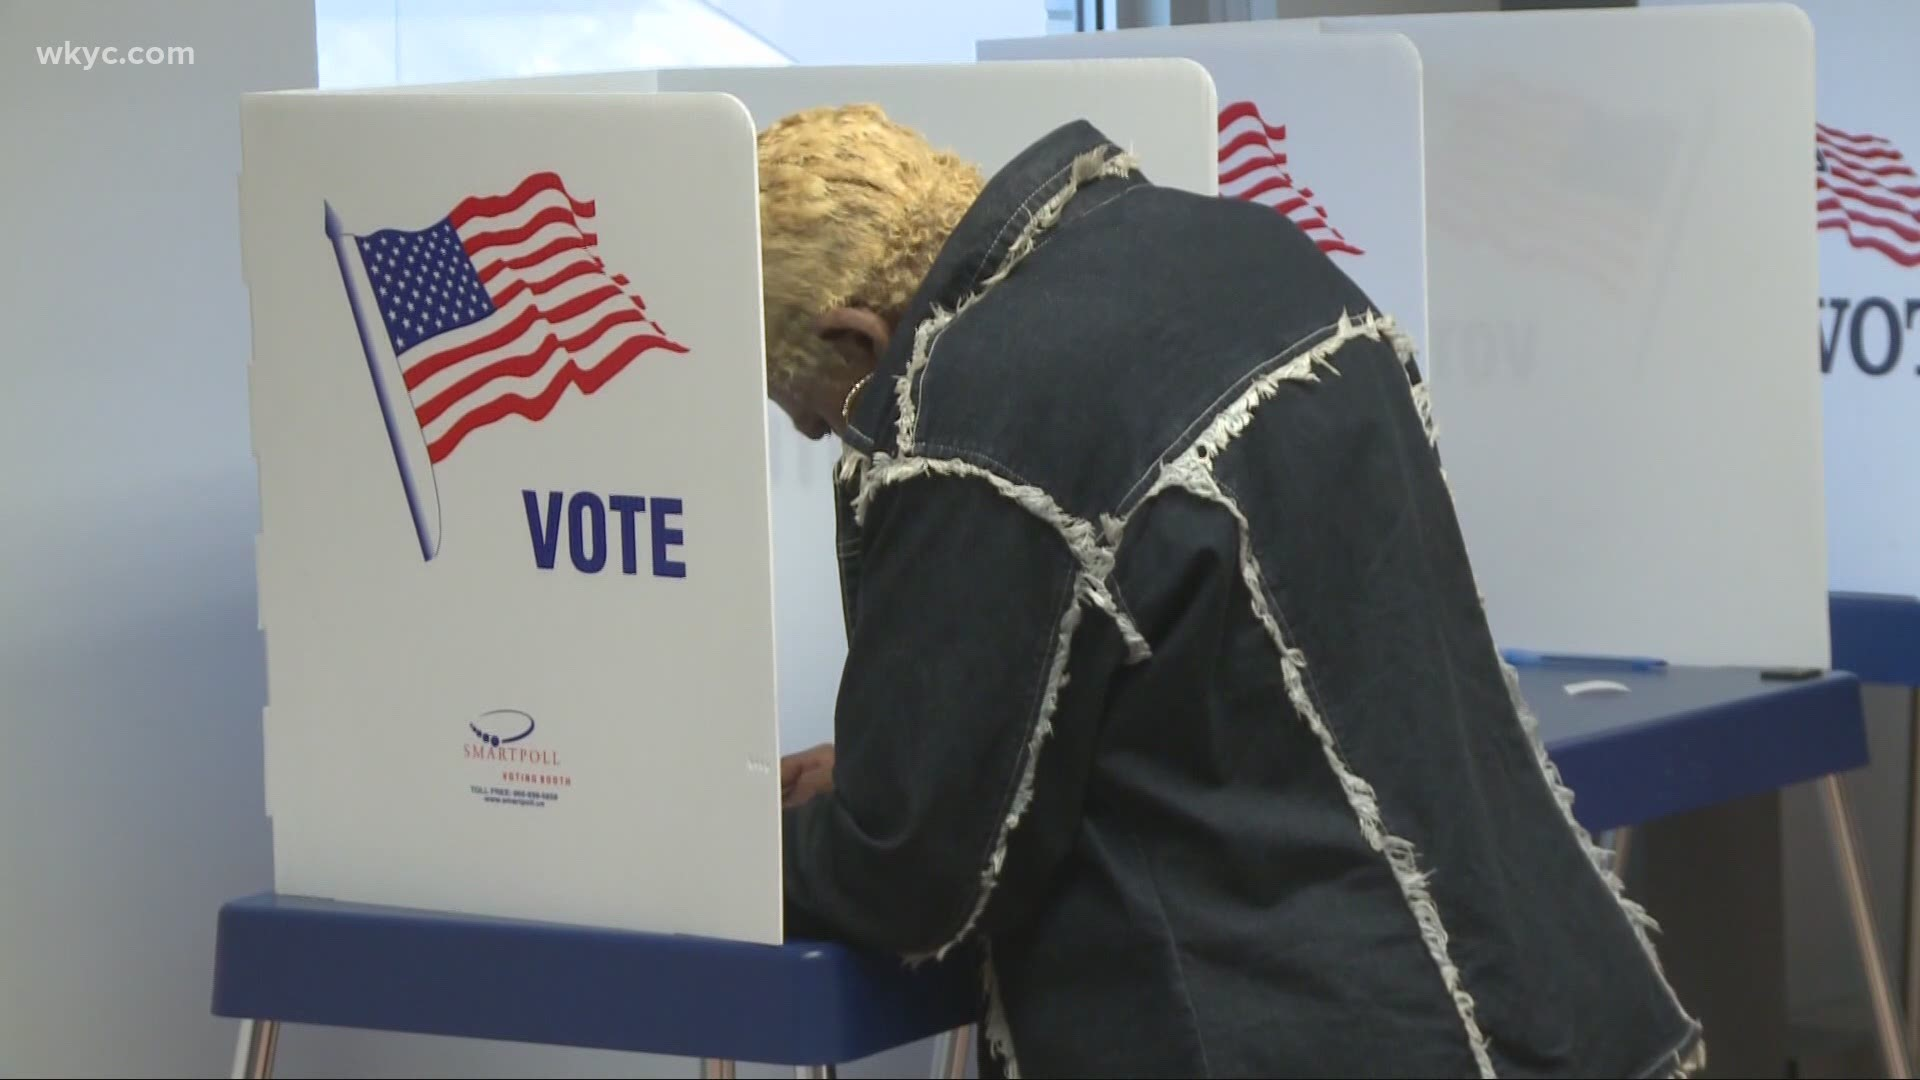 When Is Ohio S Voter Registration Deadline For 2020 Election Wkyc Com